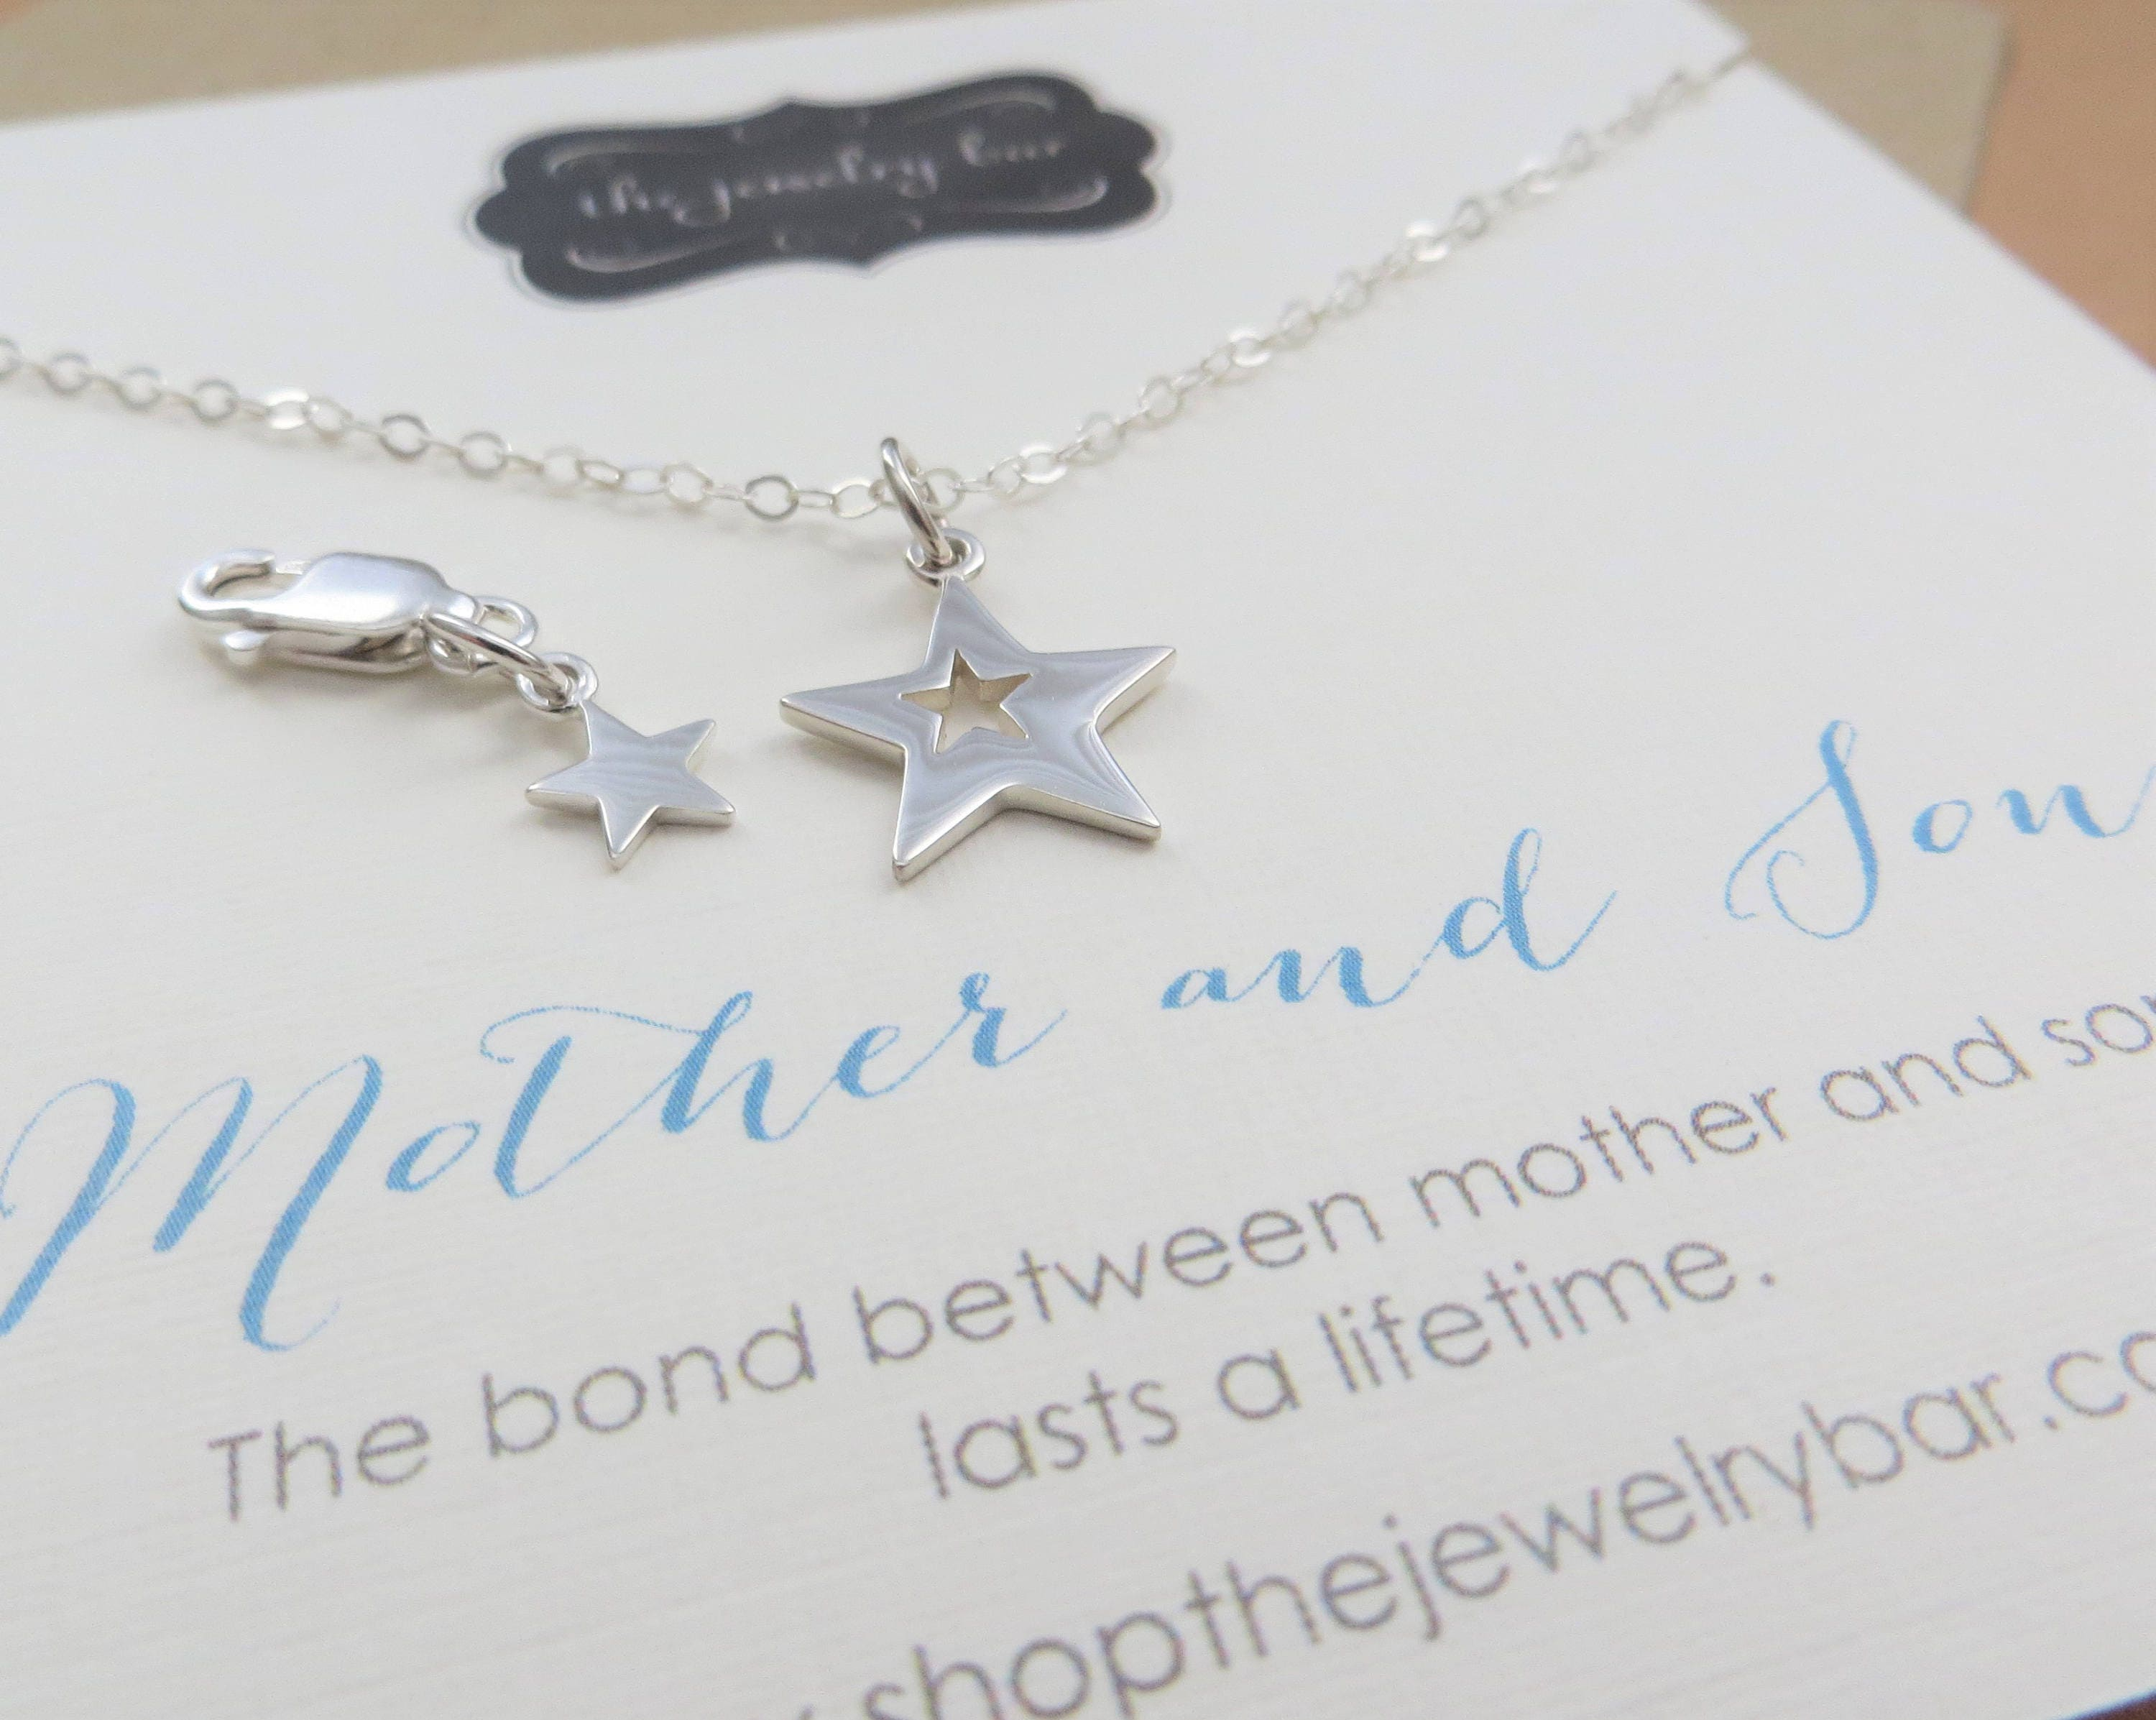 Delighted Mother Son Jewelry Pictures Inspiration - Jewelry ...